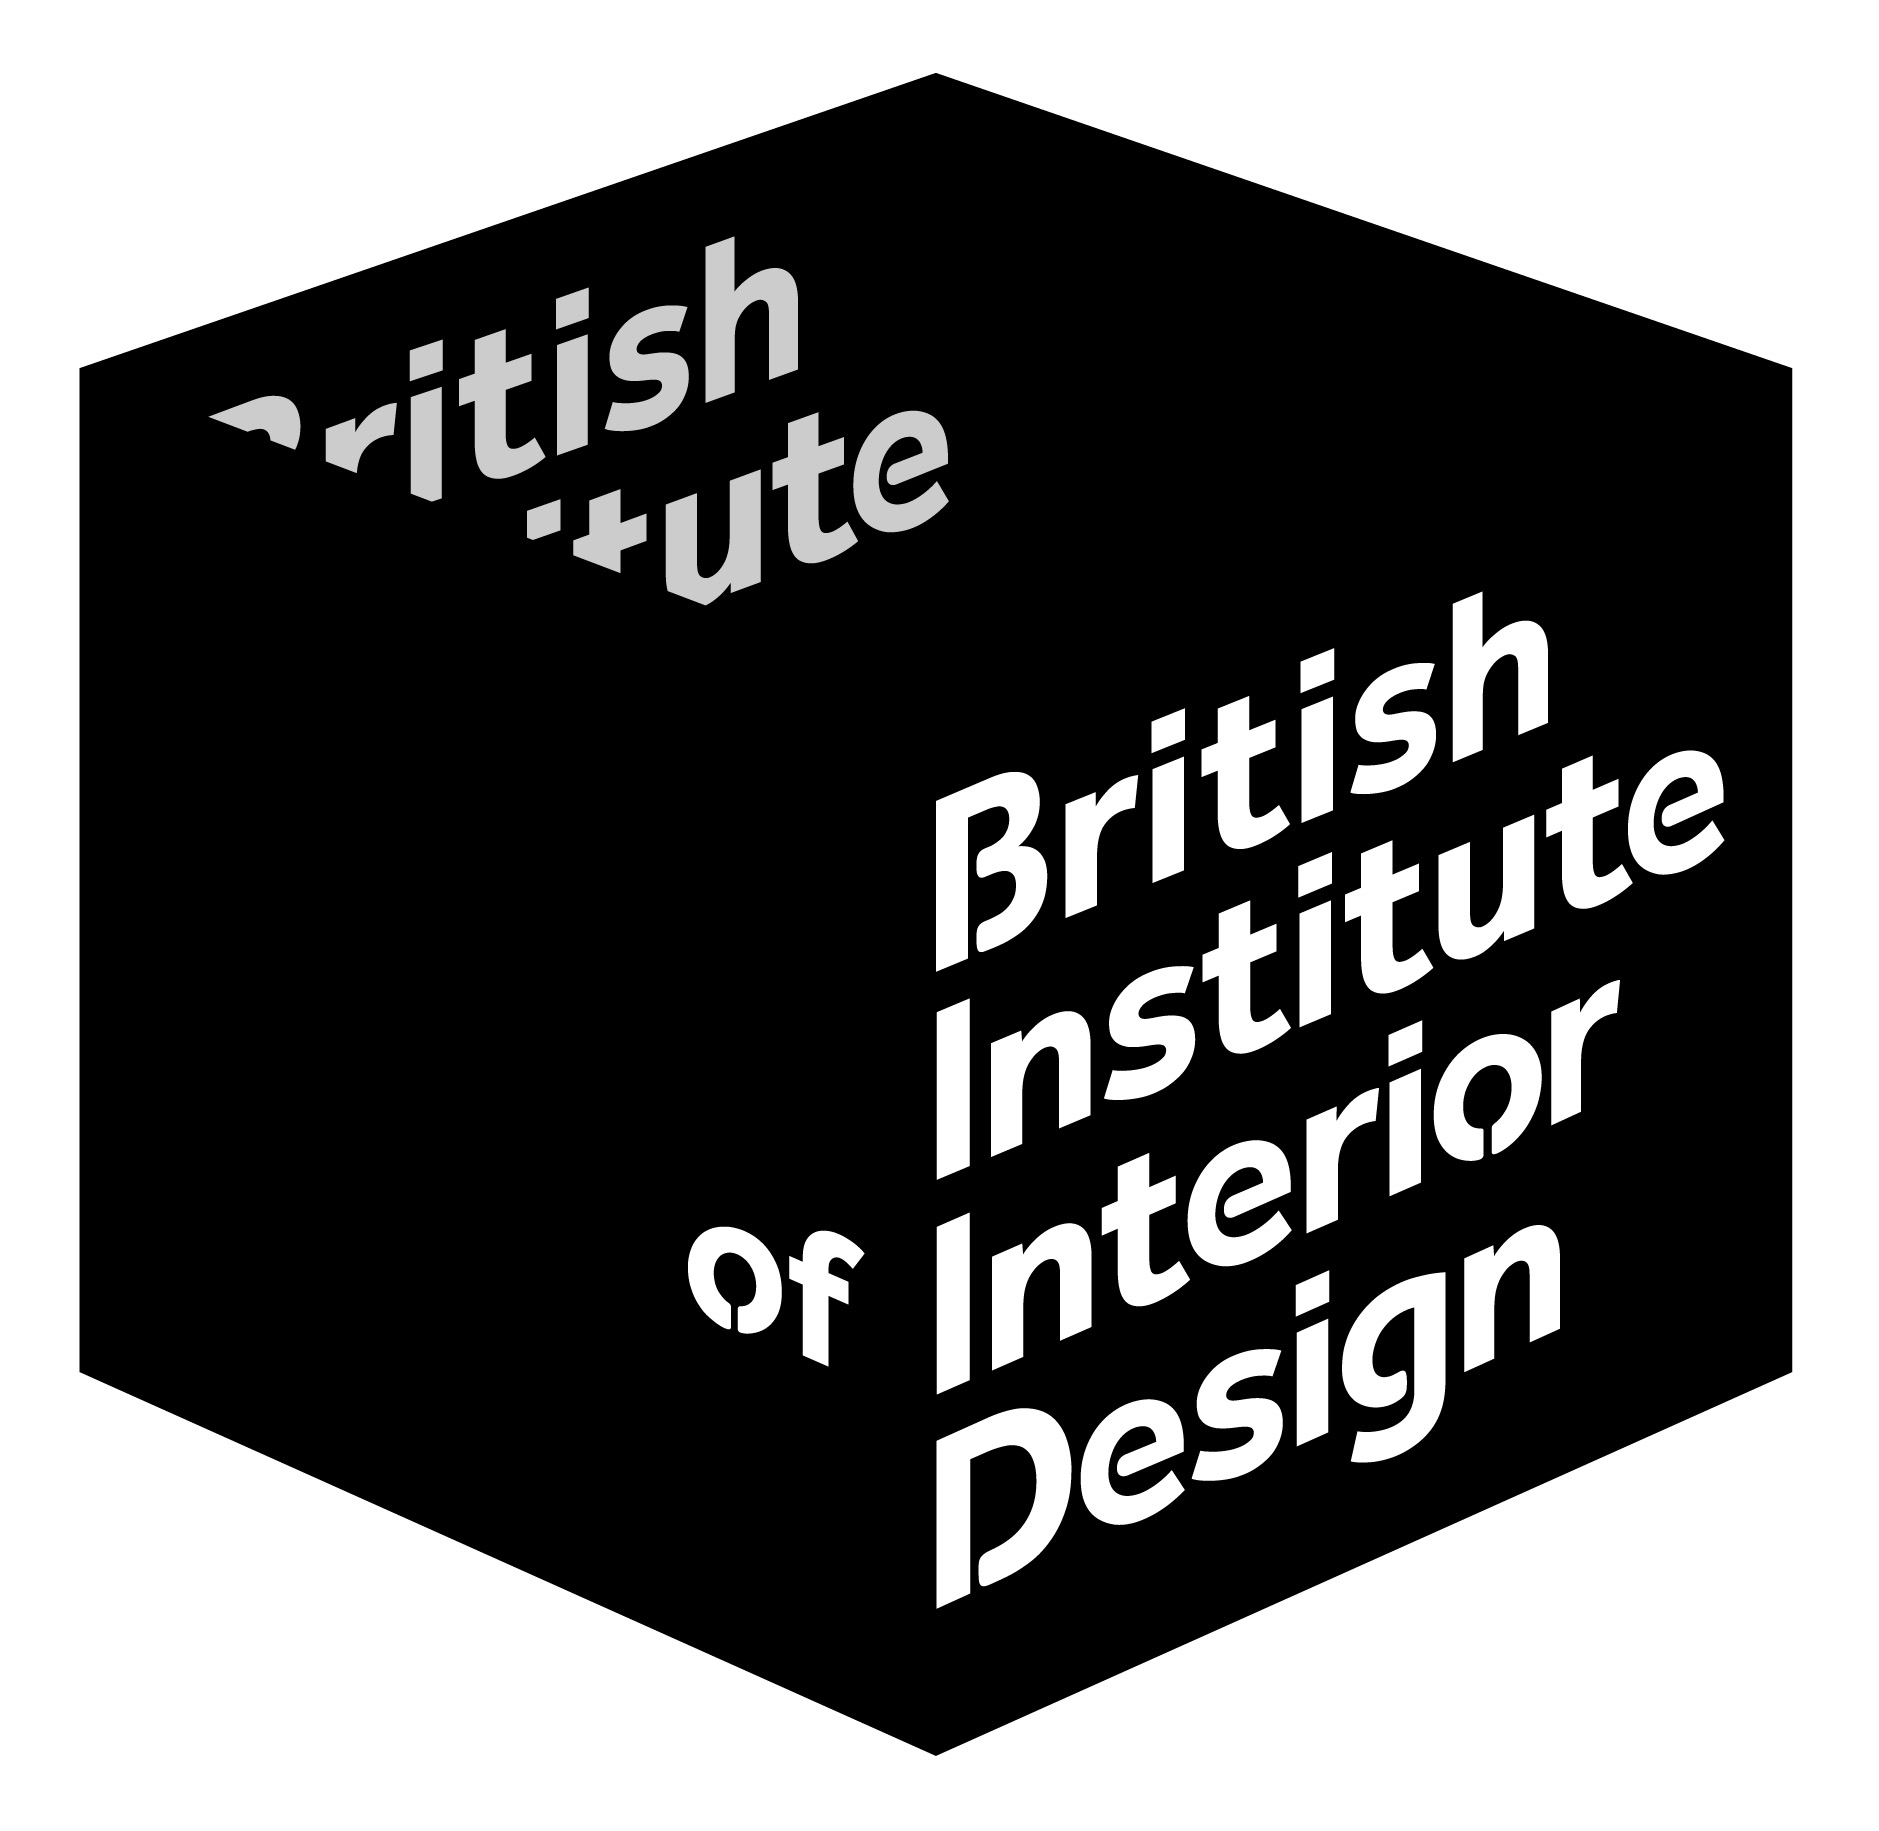 Biid members headline at interiors uk in design for Interior design institute